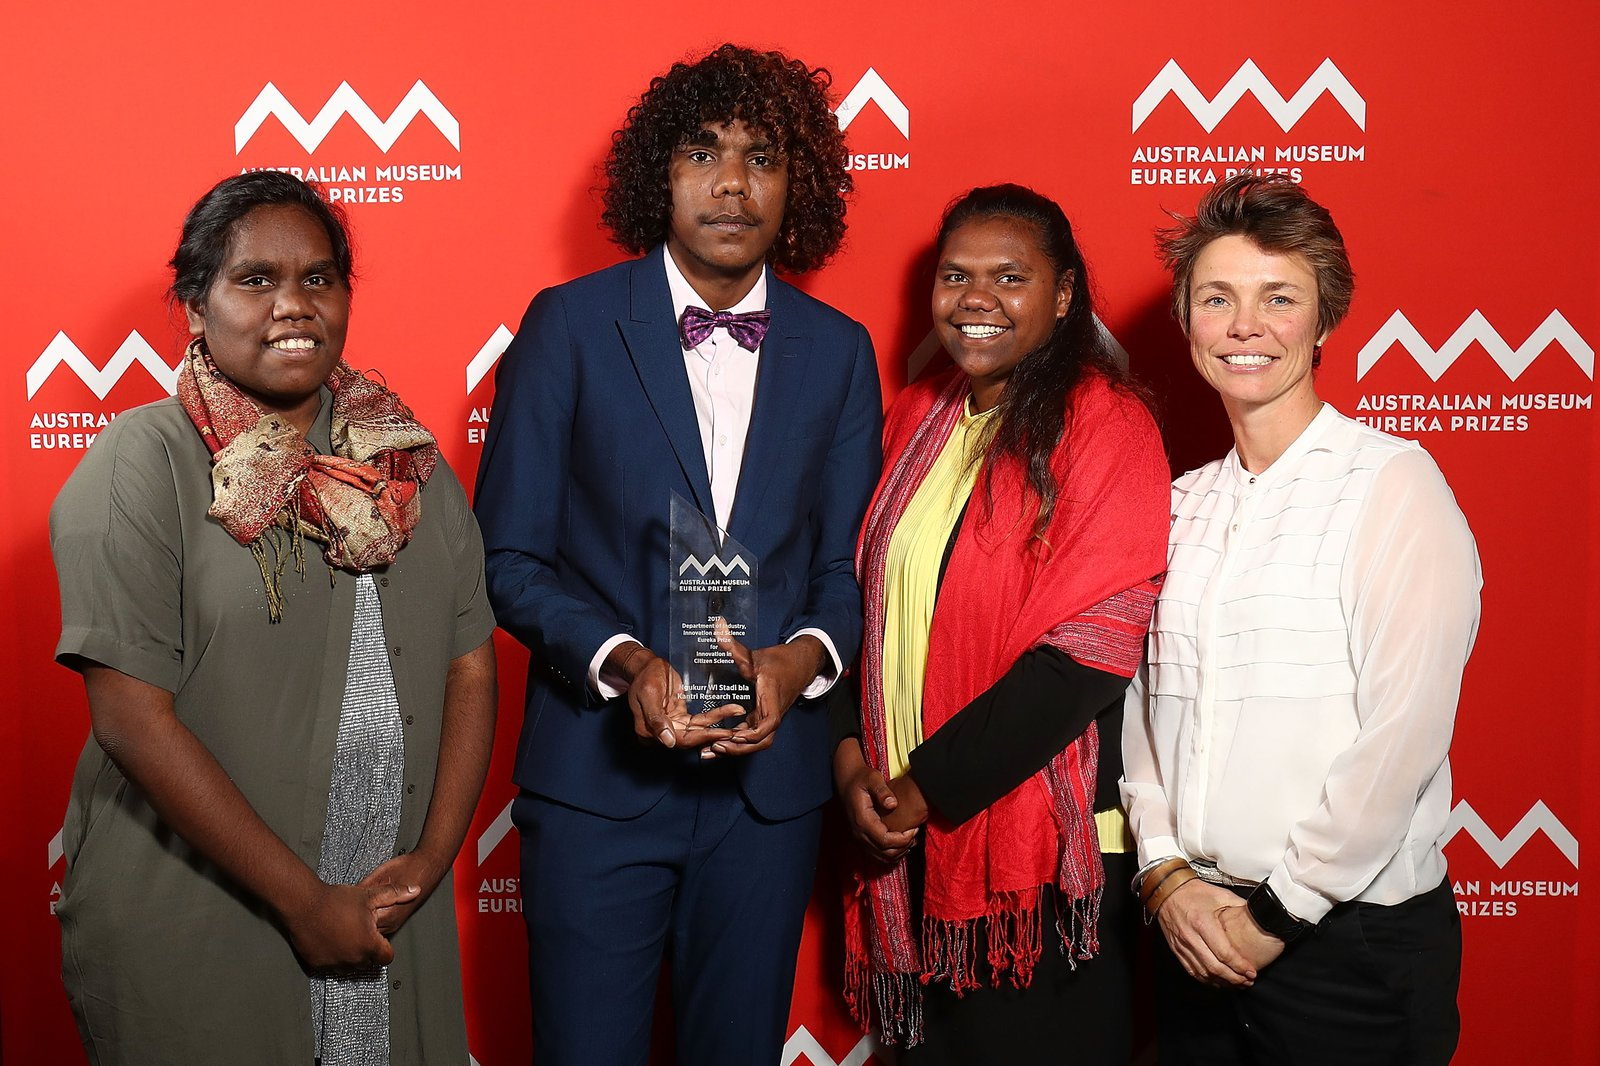 Ngukurr Wi Stadi Bla Kantri team, winner of the 2017 Department of Industry, Innovation and Science Eureka Prize for Innovation in Citizen Science